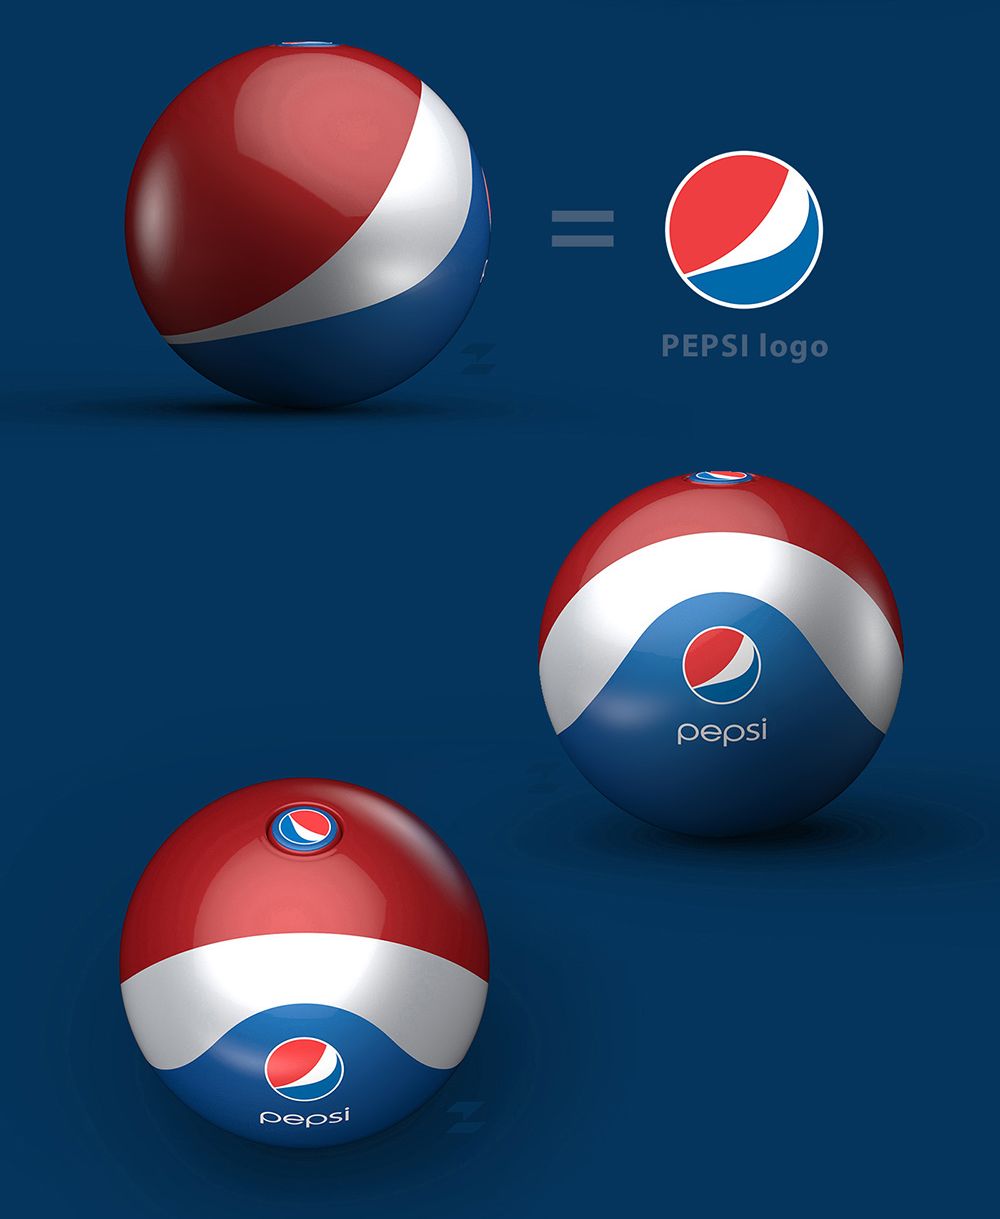 Pepsi-Rubber-Ball-Bottle-03